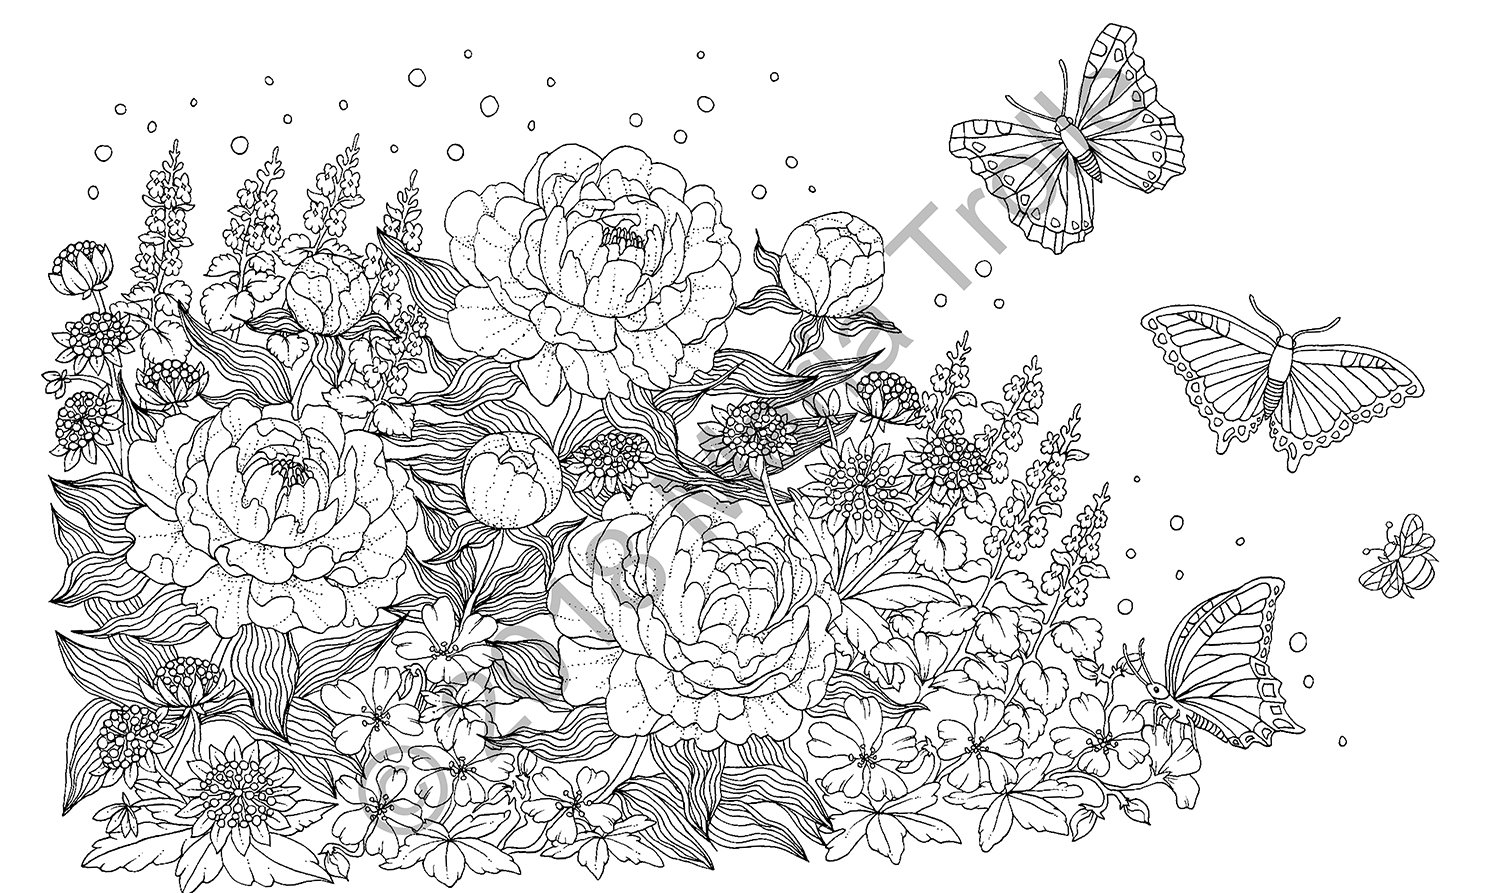 Originally Published in Sweden as Skymningstimman Nightfall Coloring Book